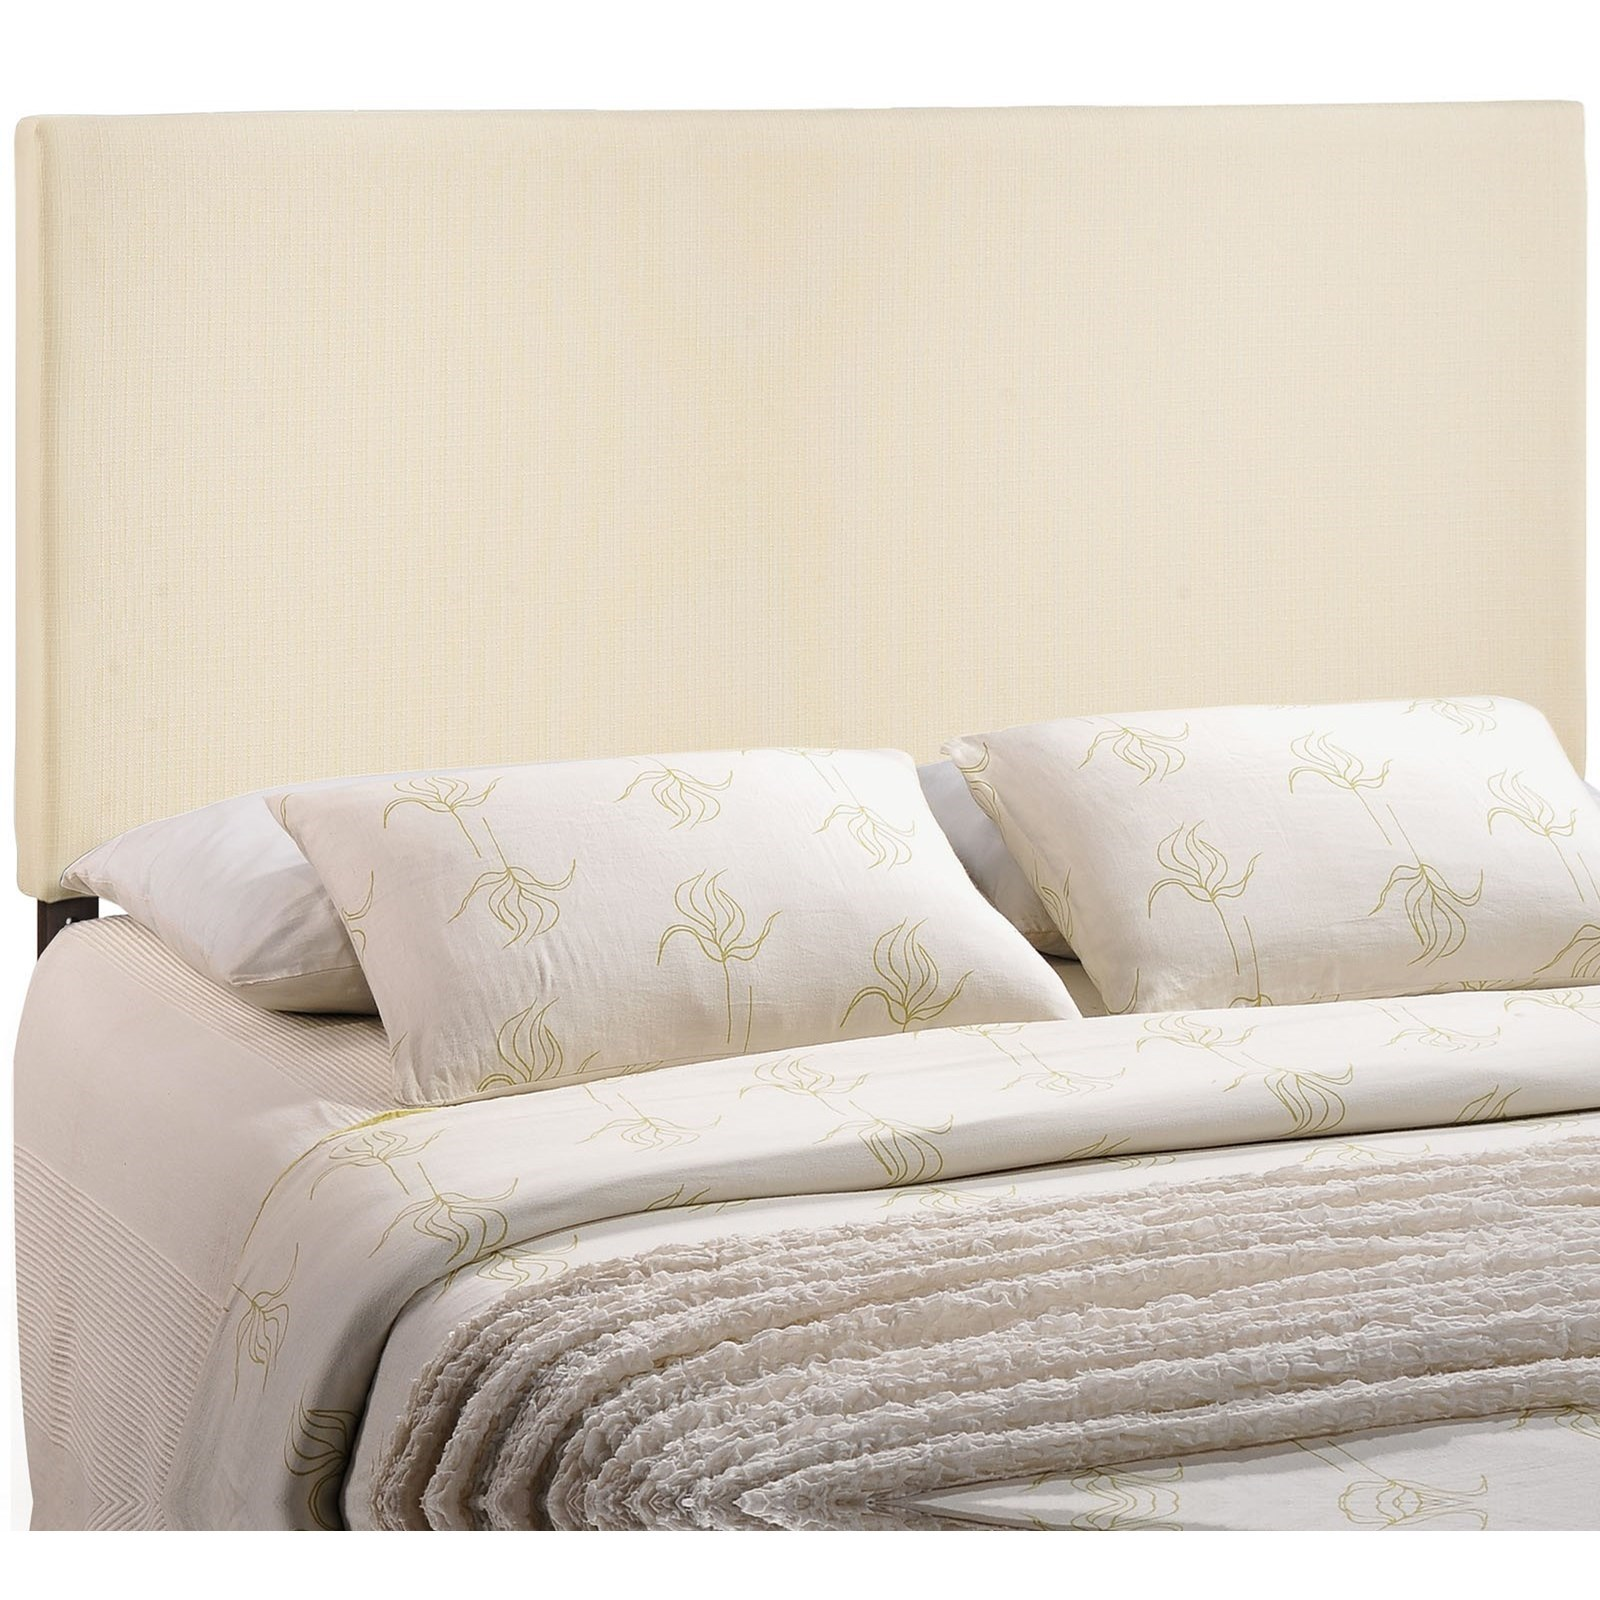 Region King Upholstered Headboard by Modway at Value City Furniture